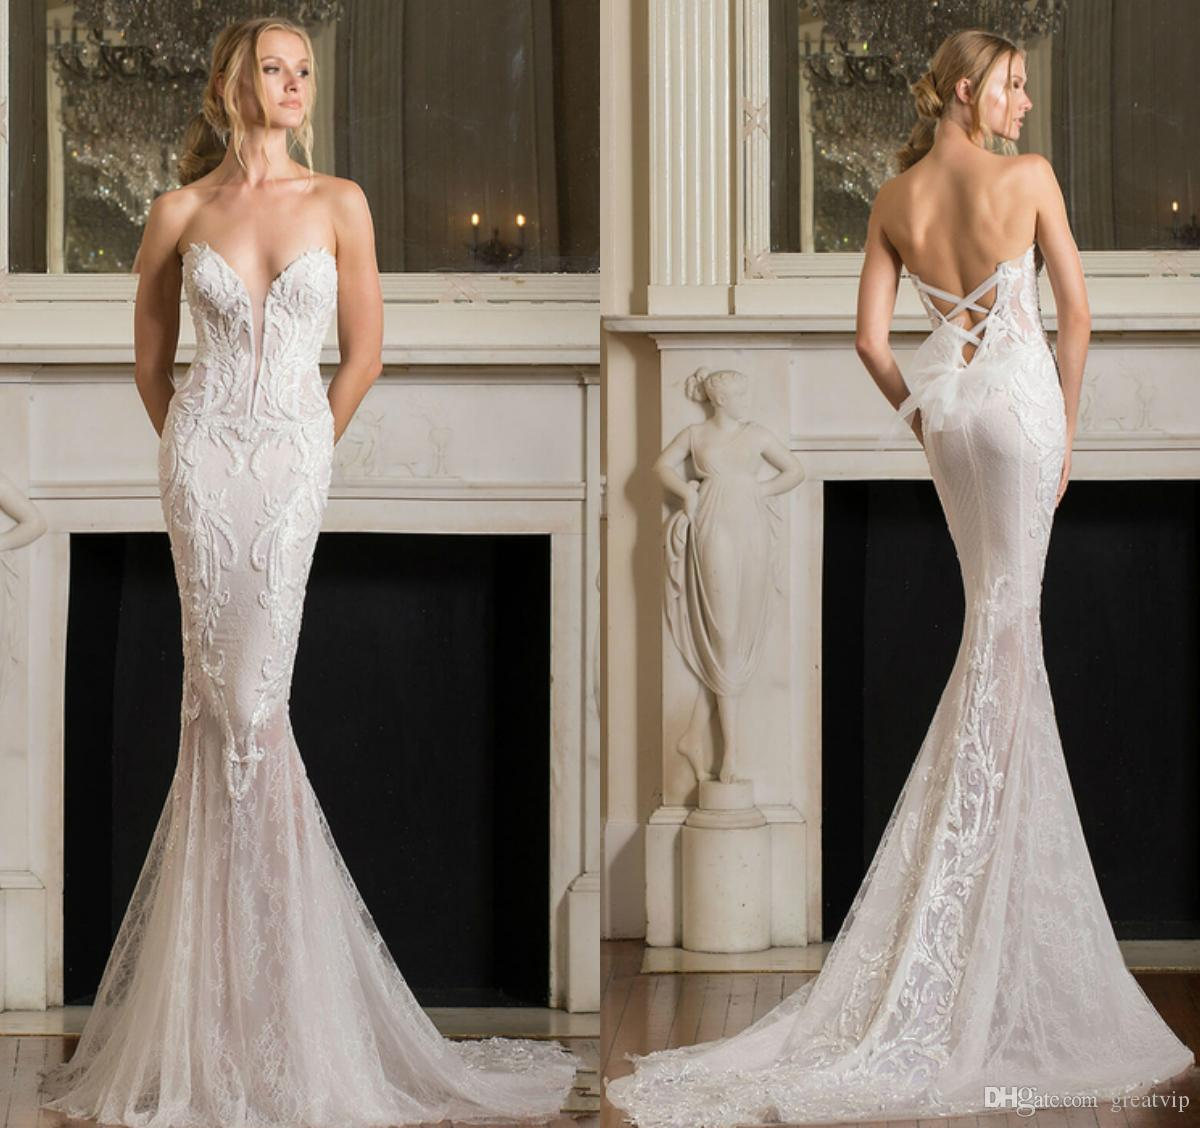 Pnina Tornai 2019 Wedding Dresses: Pnina Tornai 2019 Mermaid Wedding Dresses V Neck Backless